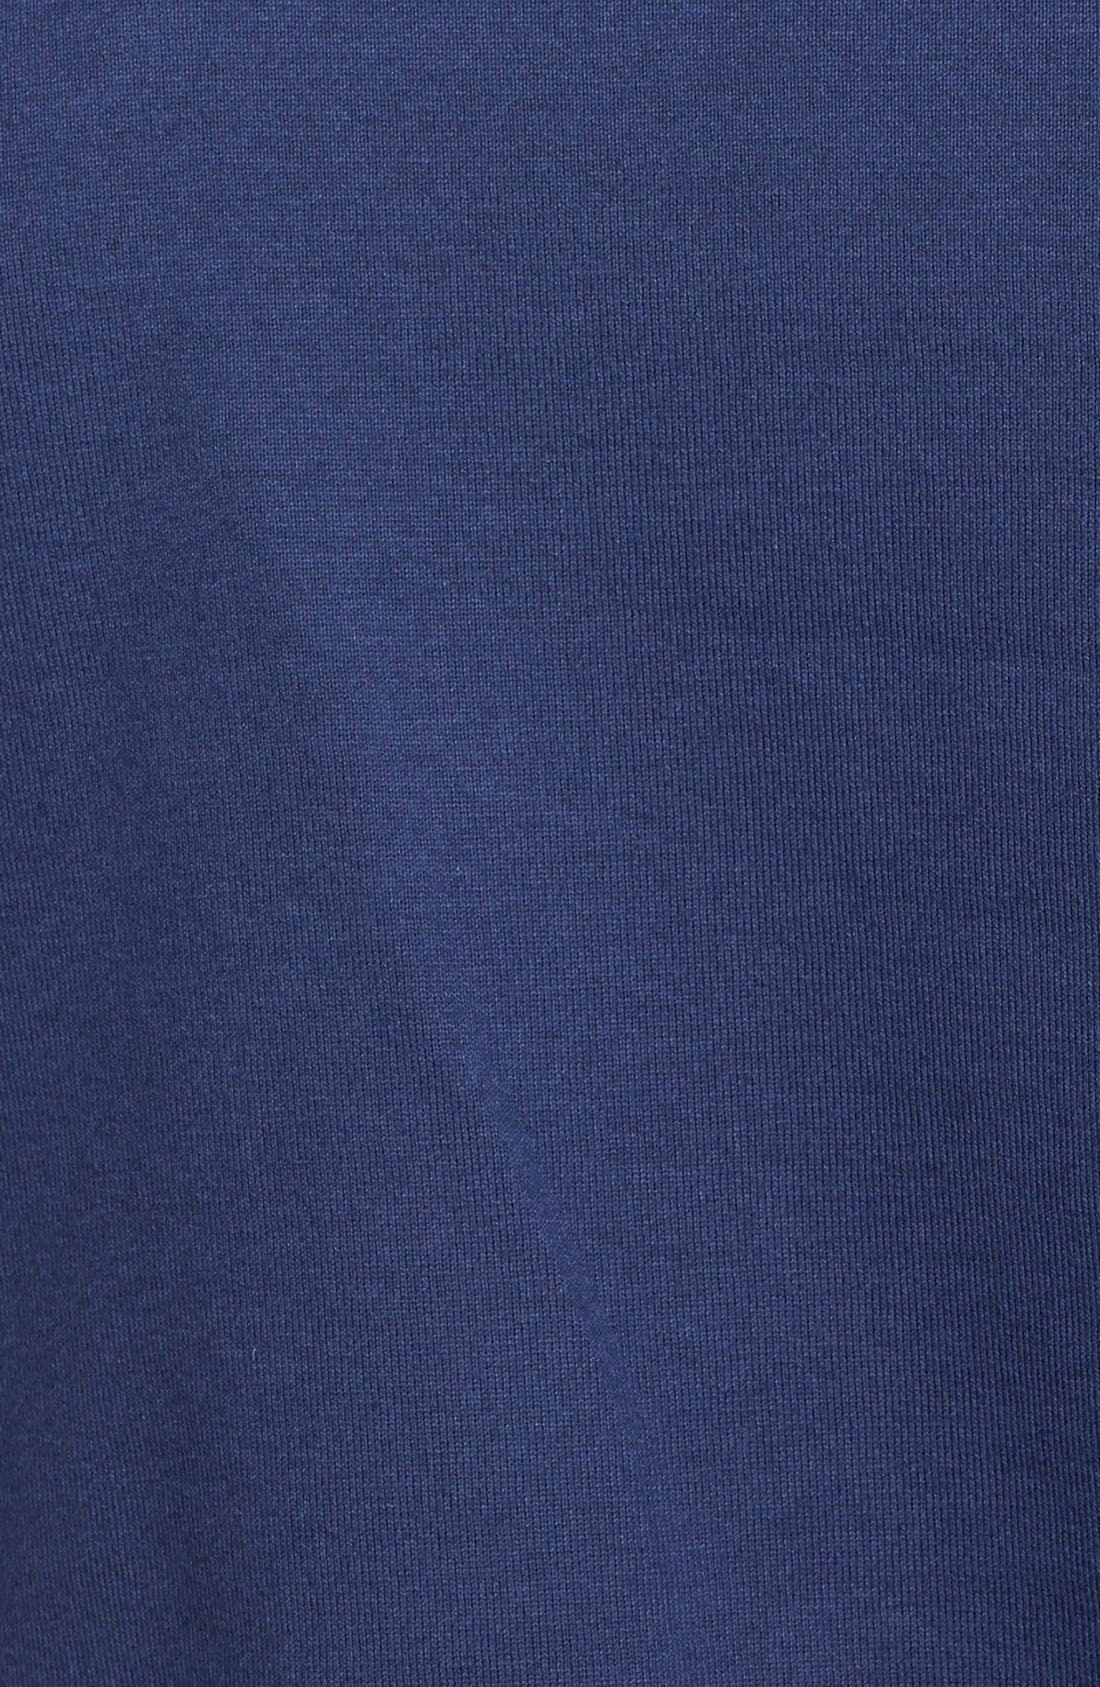 PLAY Graphic T-Shirt,                             Alternate thumbnail 3, color,                             Navy